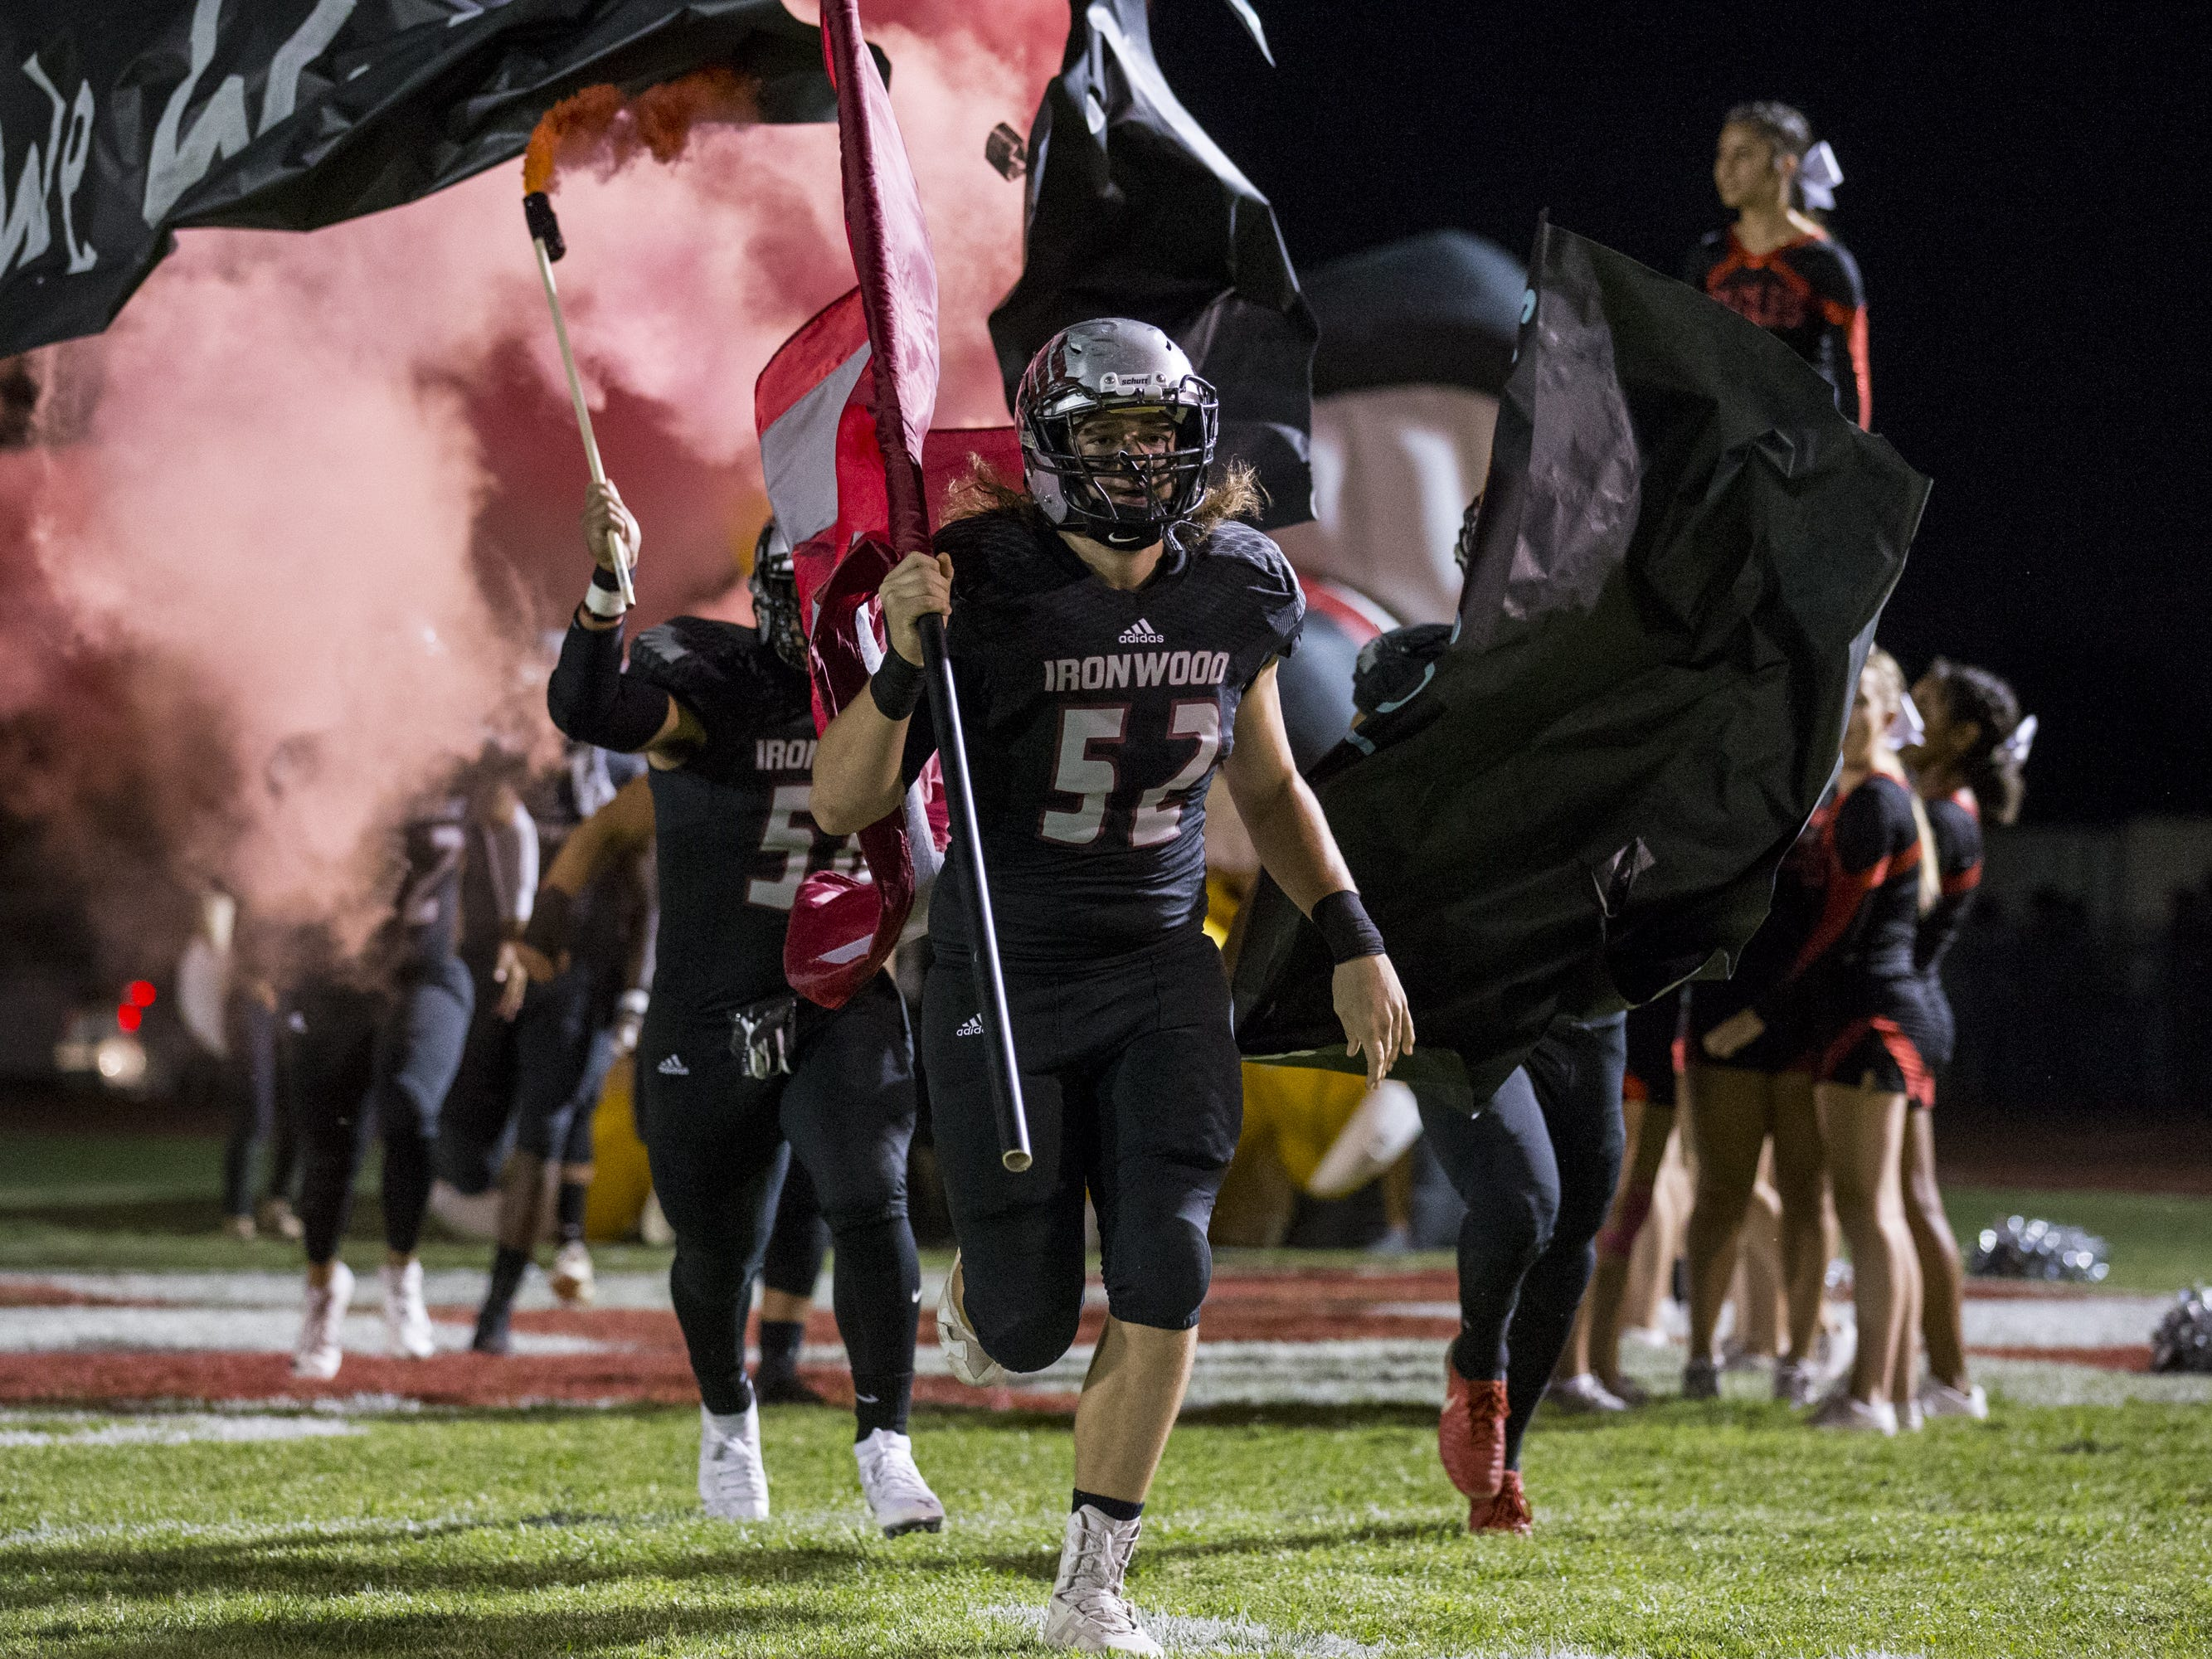 Ironwood takes the field before the game against Sunrise Mountain on Friday, Sept. 28, 2018, at Ironwood High School in Glendale, Ariz.  #azhsfb